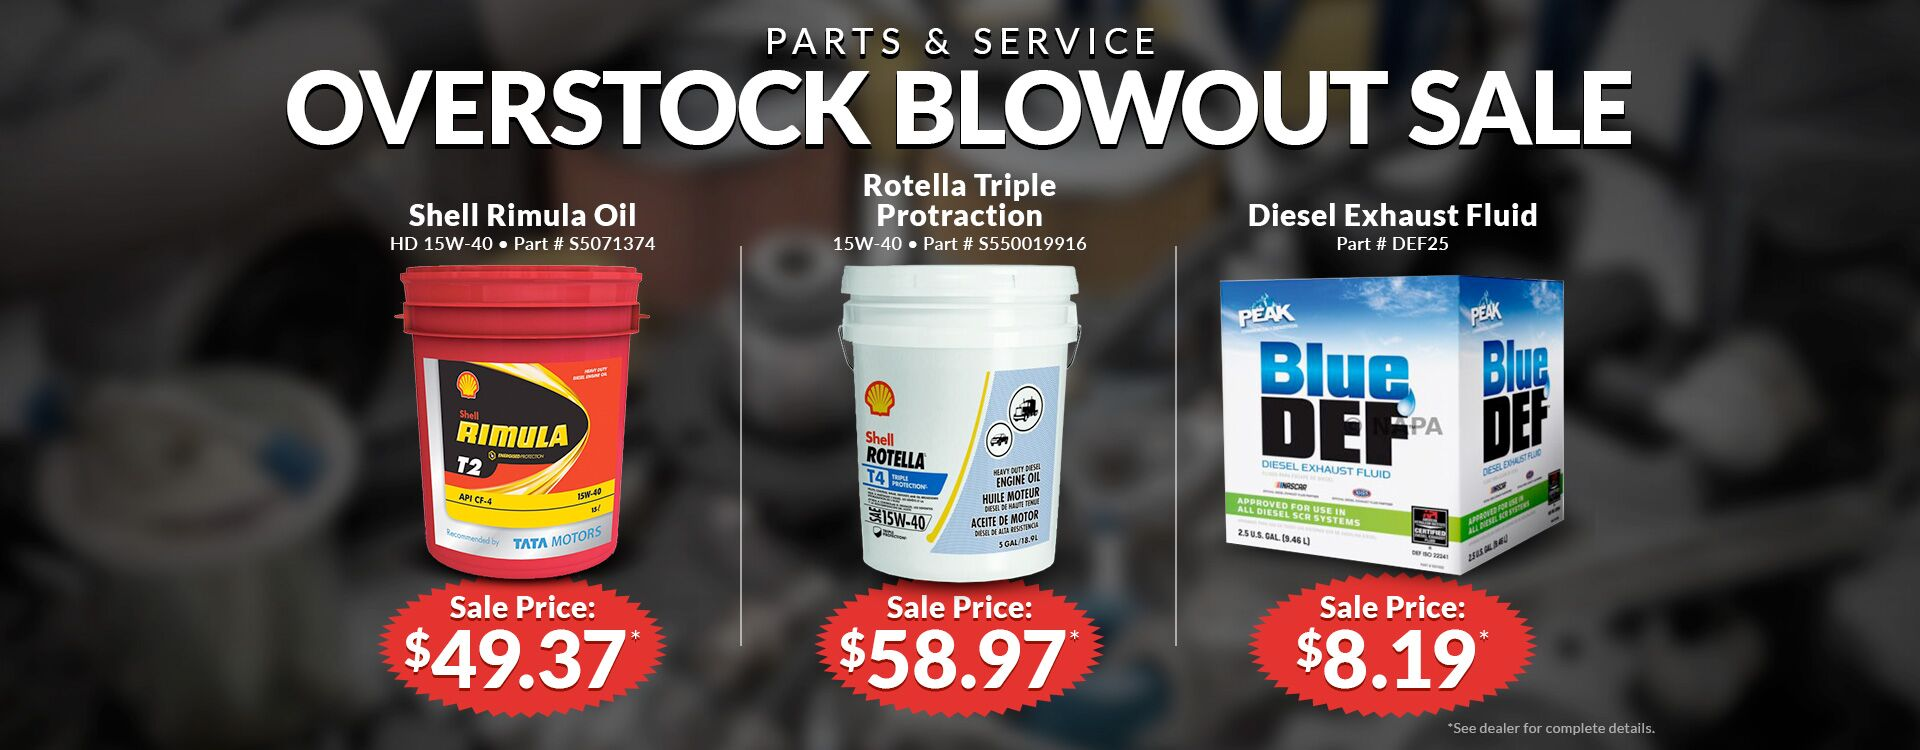 Parts and Service Overstock Blowout Sale